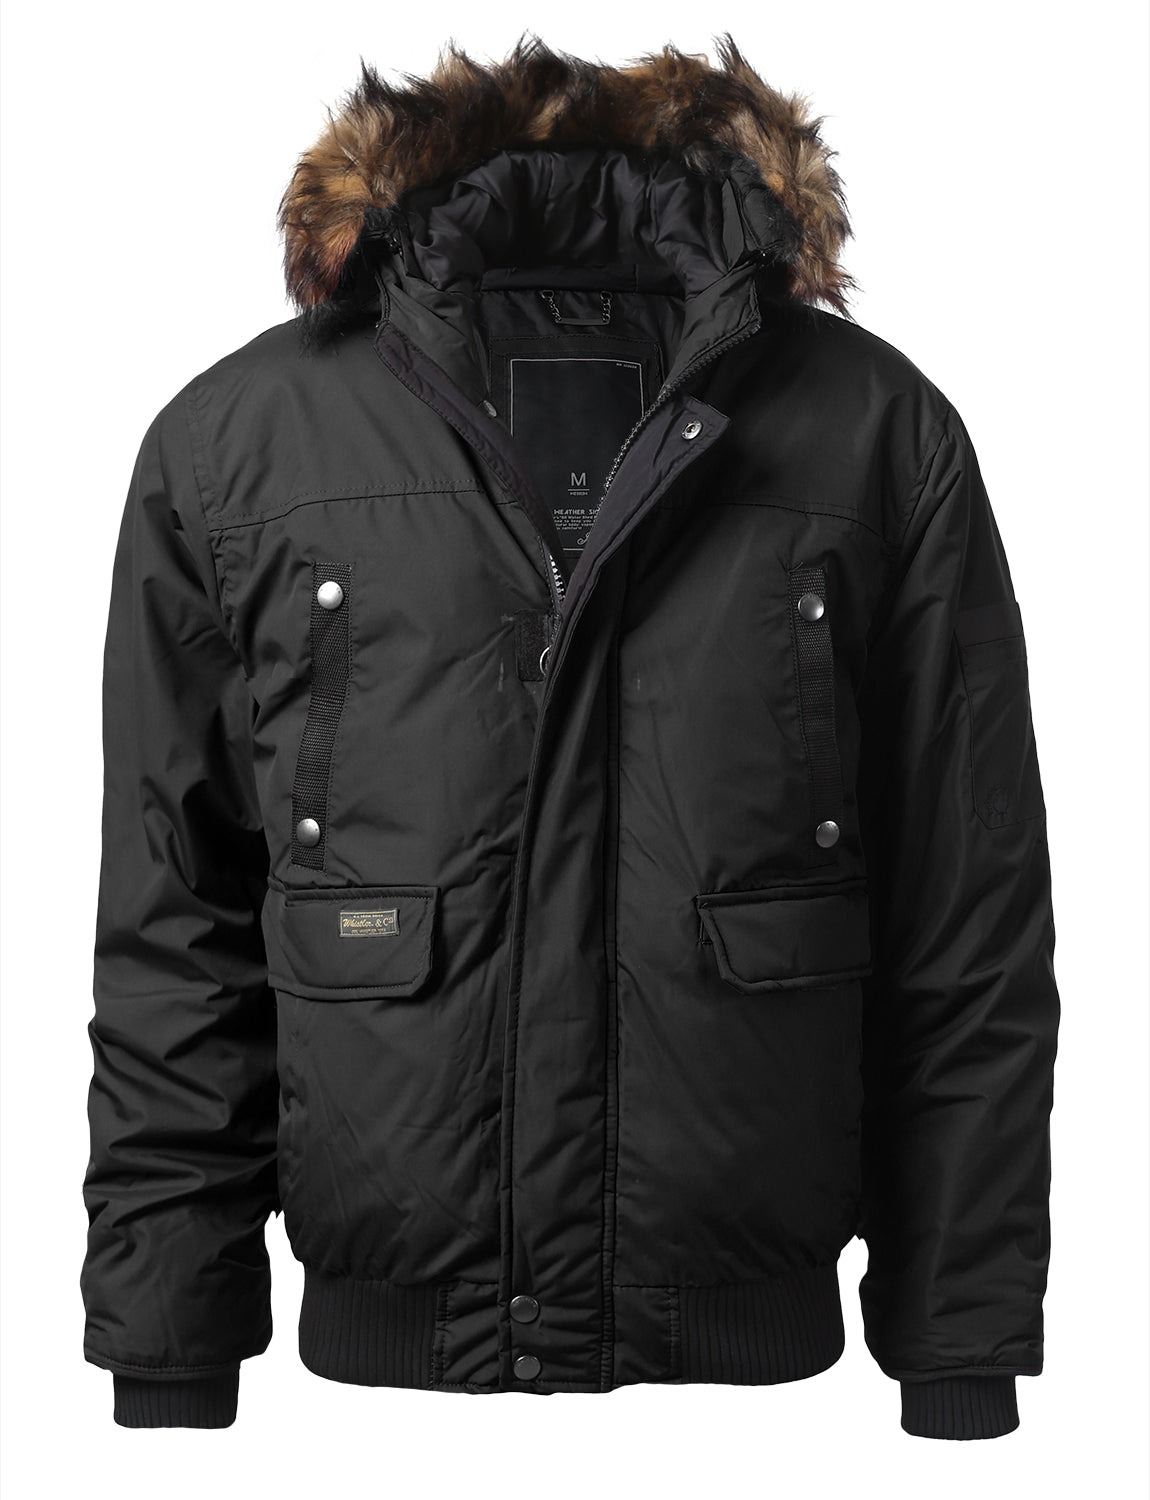 BLACK Appalachian Puffer Jacket w/ Faux Fur Hood - URBANCREWS